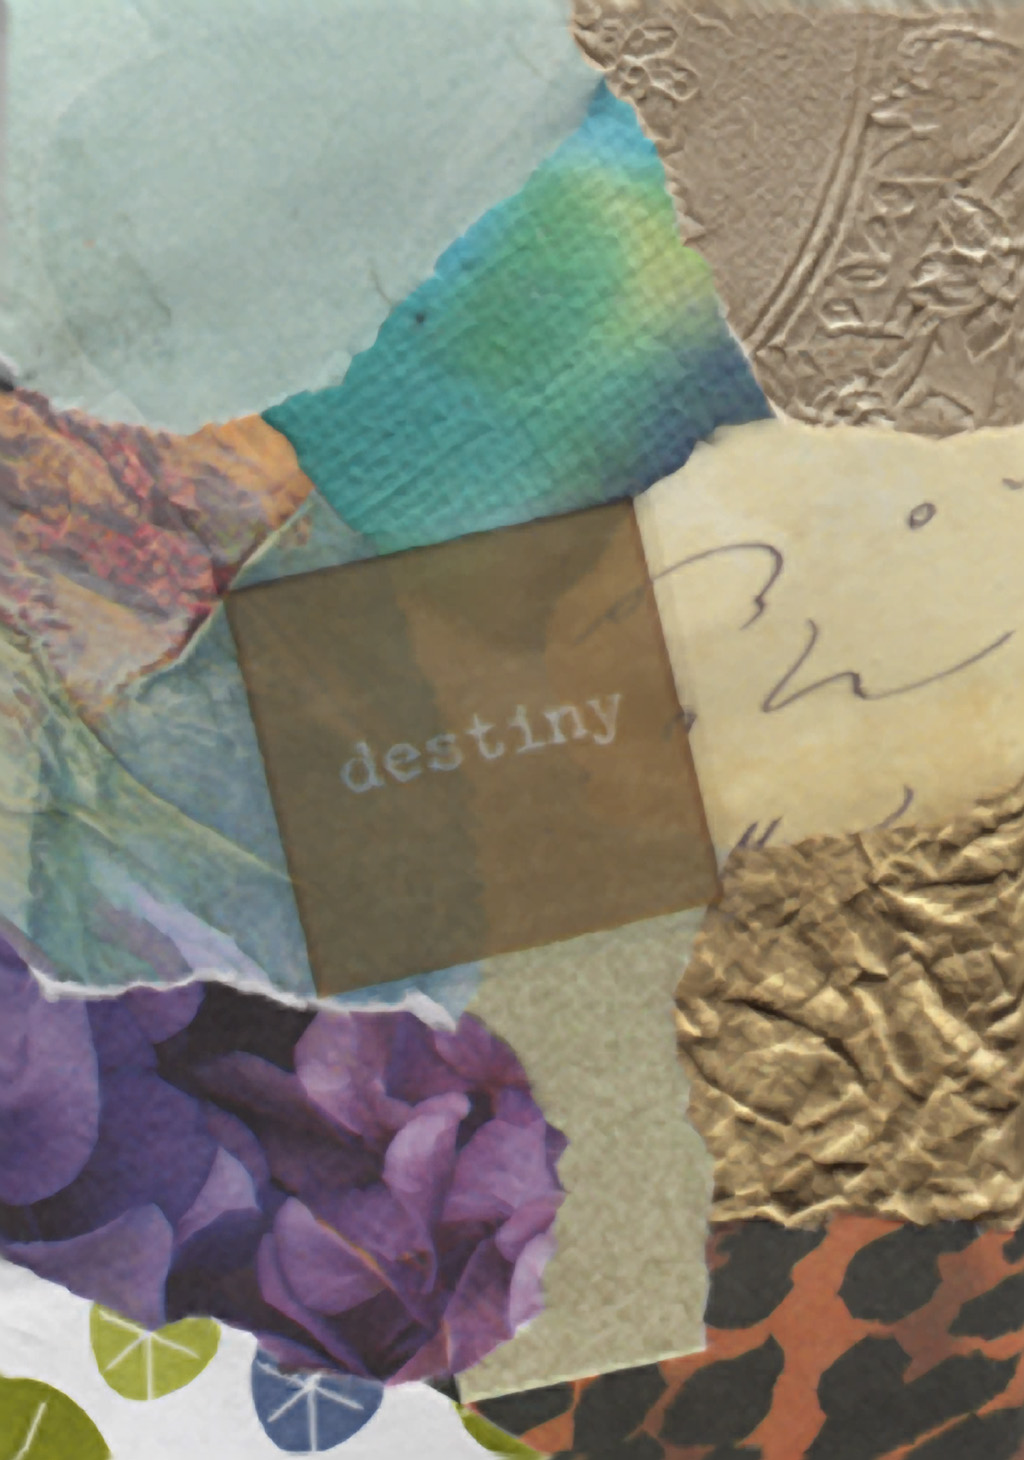 Collaged Words: Destiny